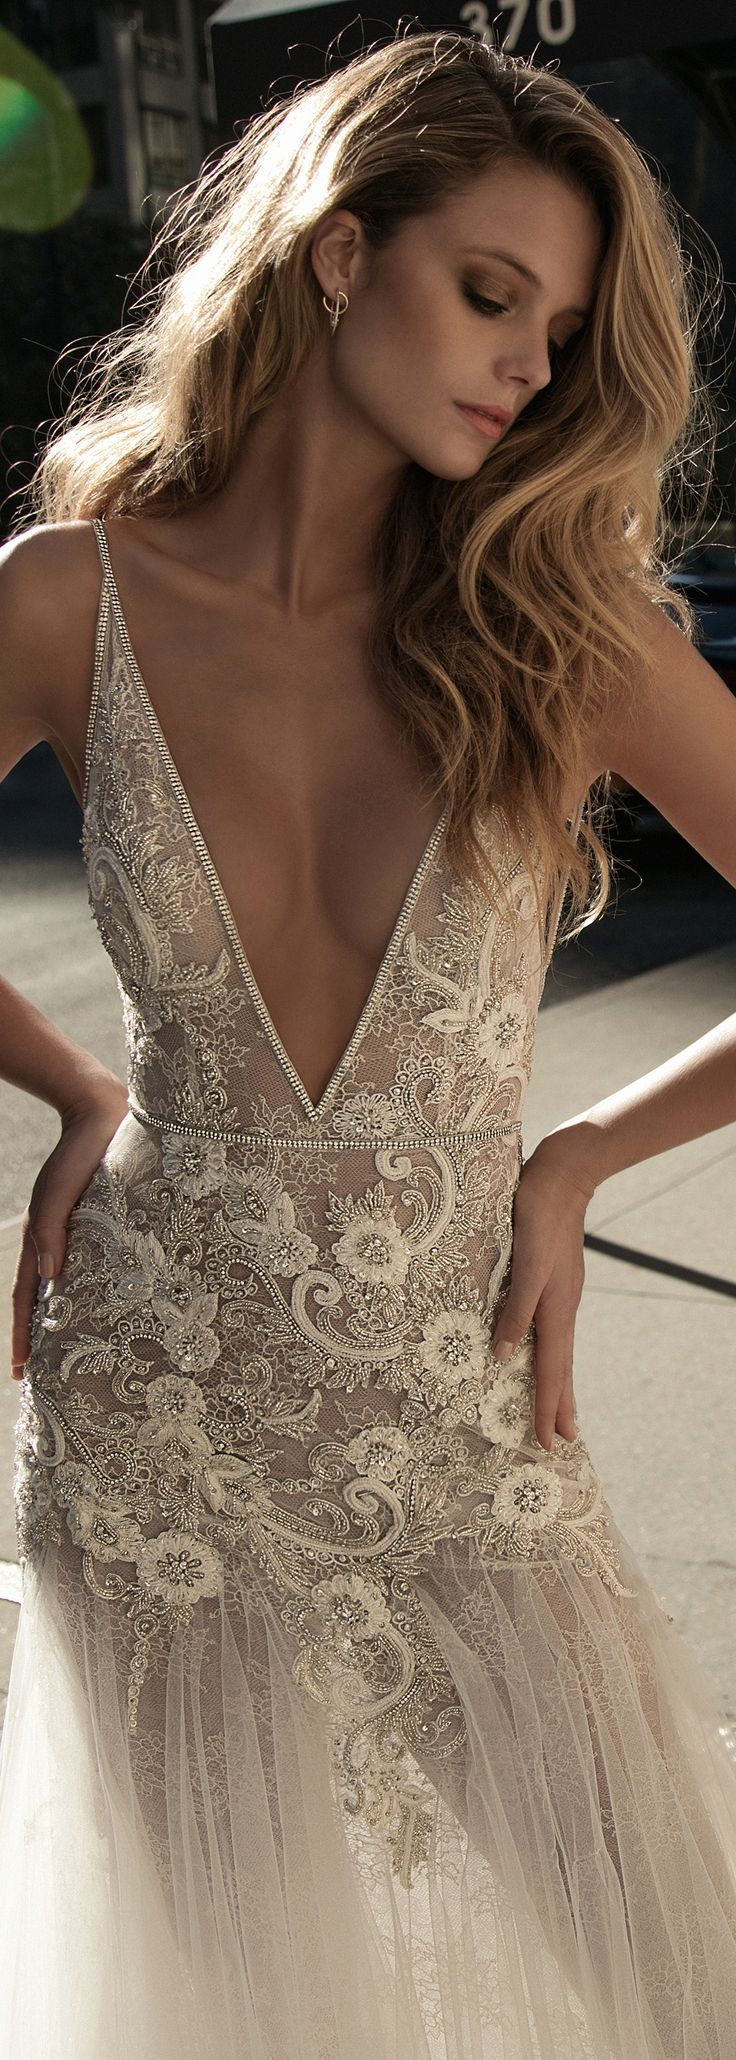 New #BERTA FW 2017 bridal collection. www.berta.com/